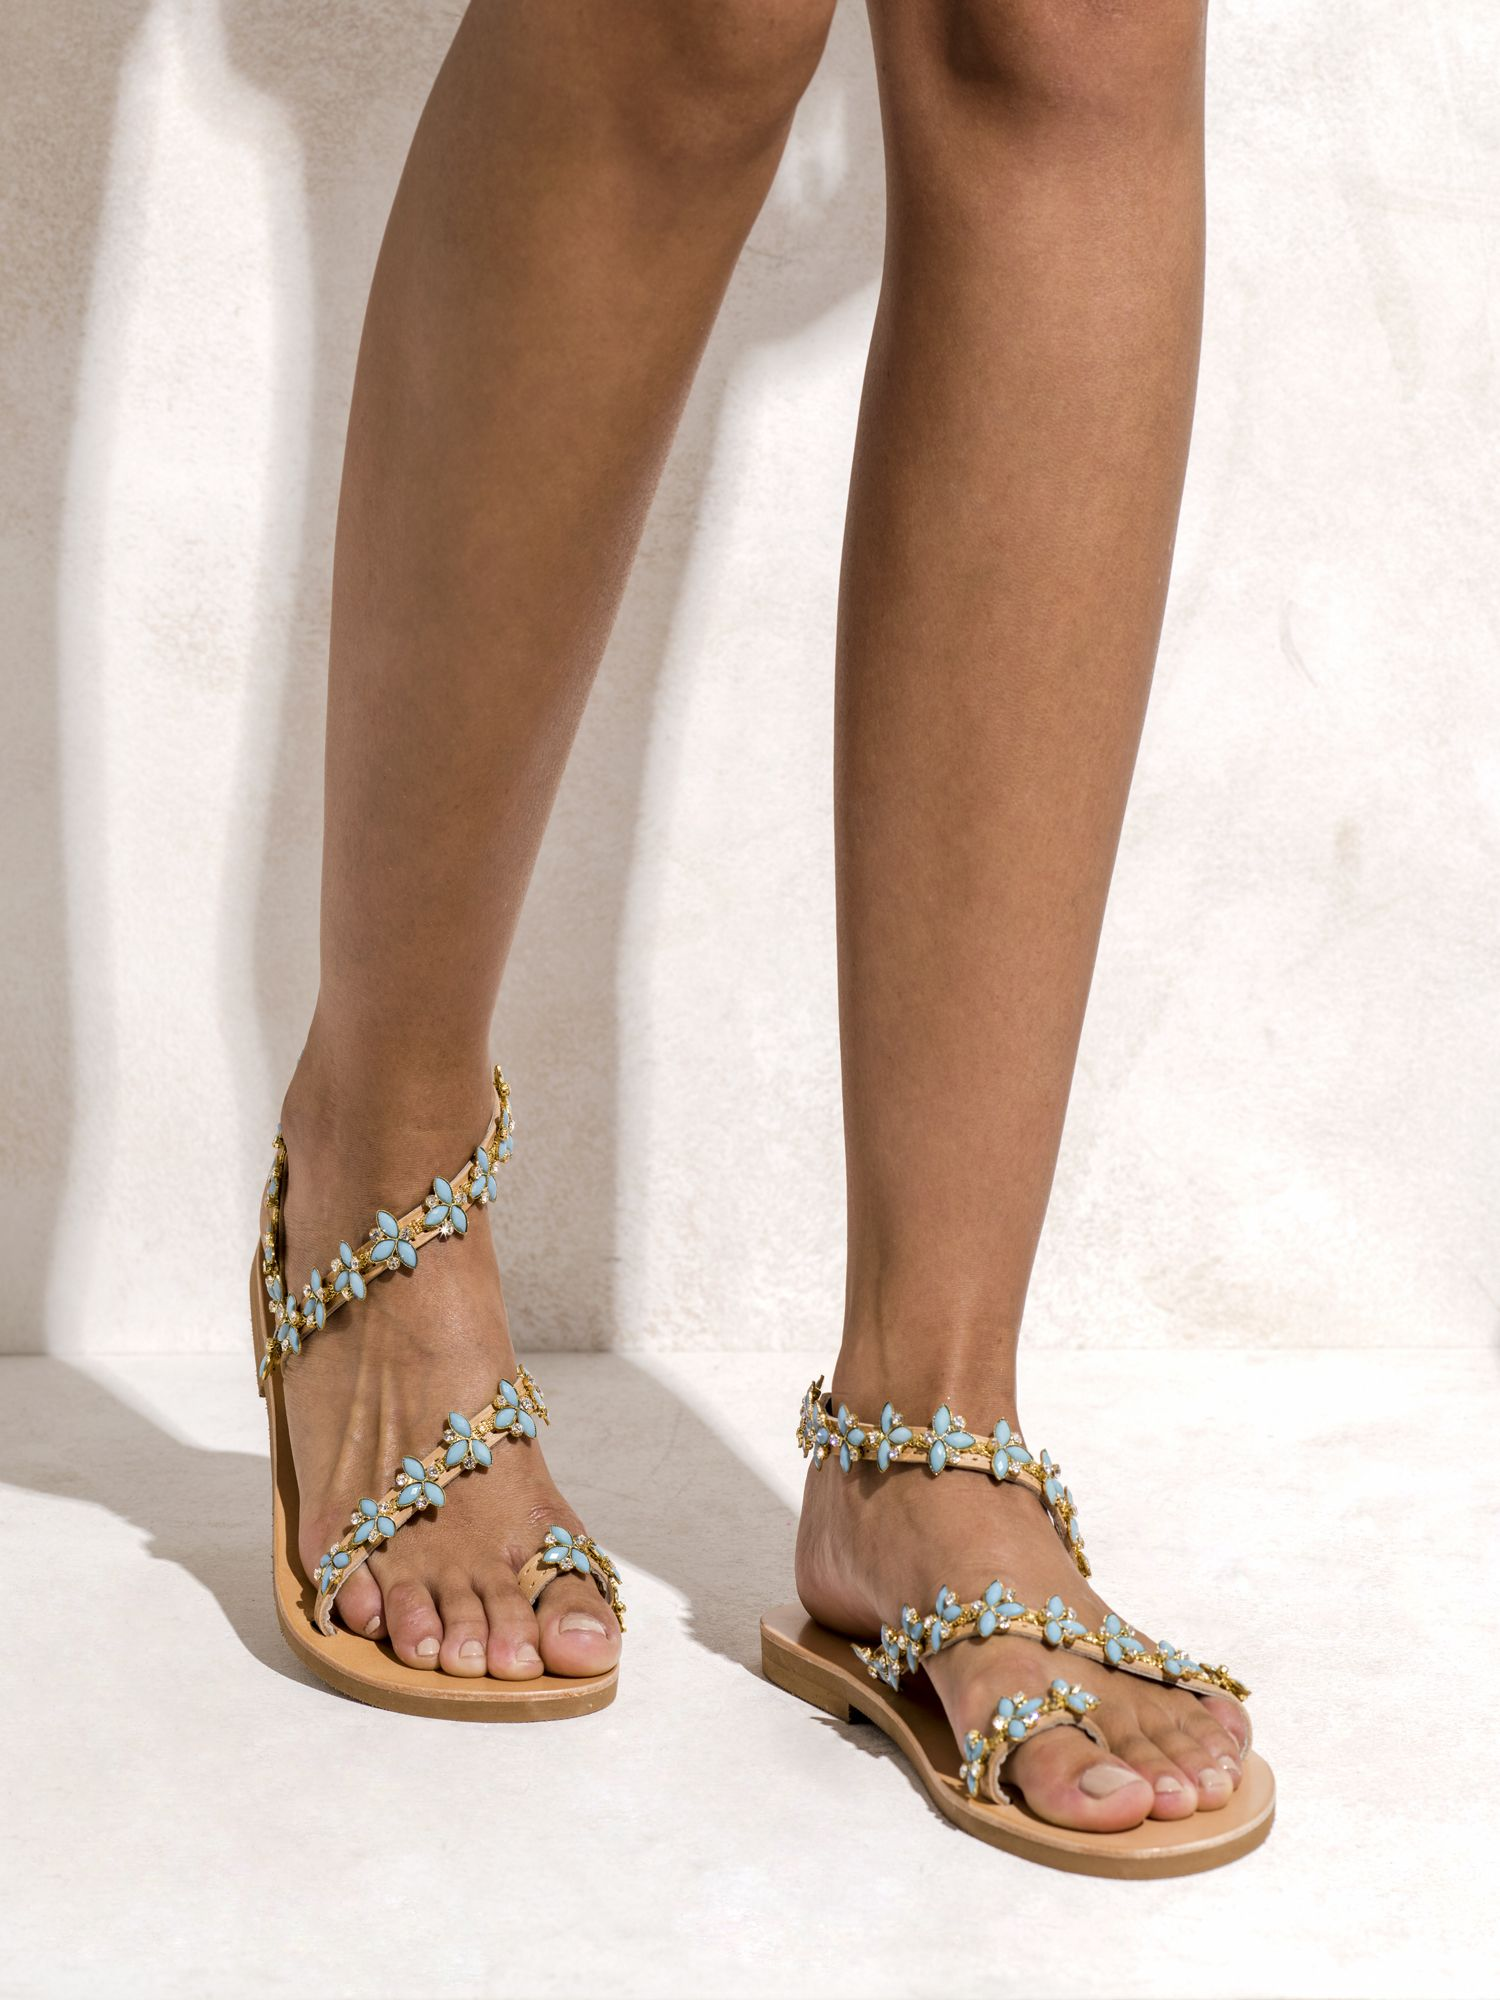 c2bee9b43c70e8 Handmade genuine greek leather sandals decorated with Italian made gold  plated braid with turquoise opal and